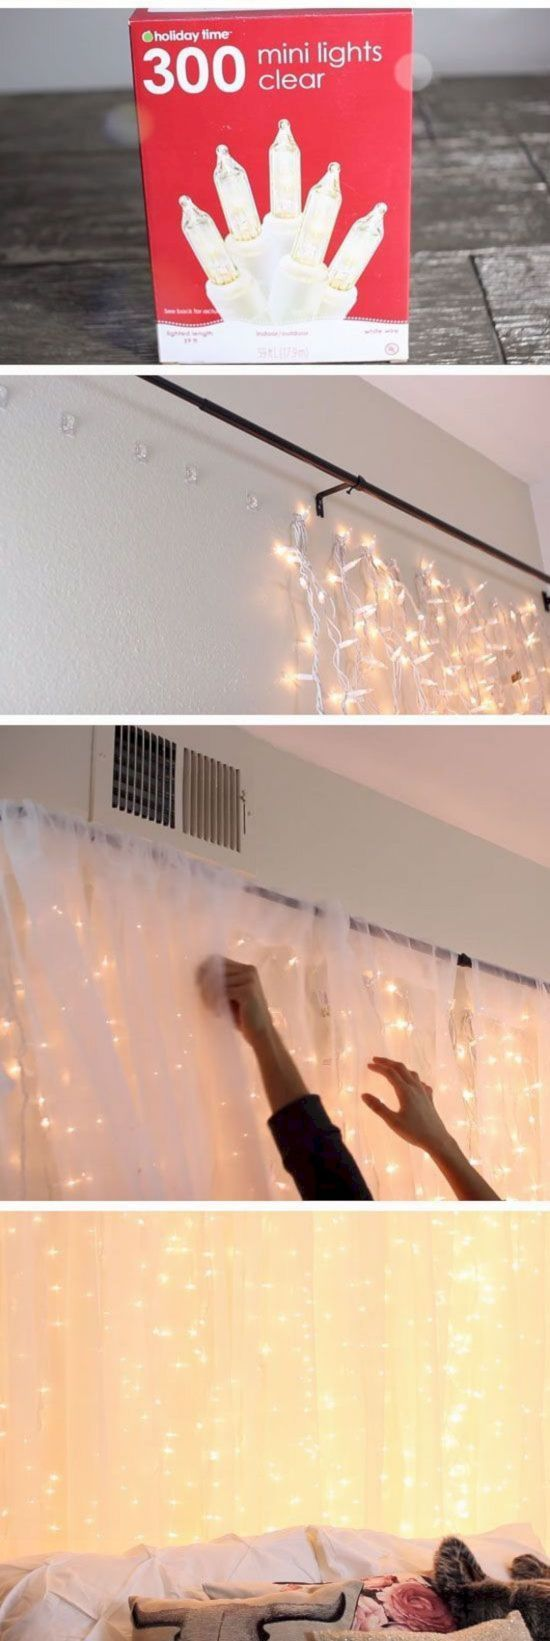 10 Cute DIY Ideas That Will Make Your Home Adorable - Society19